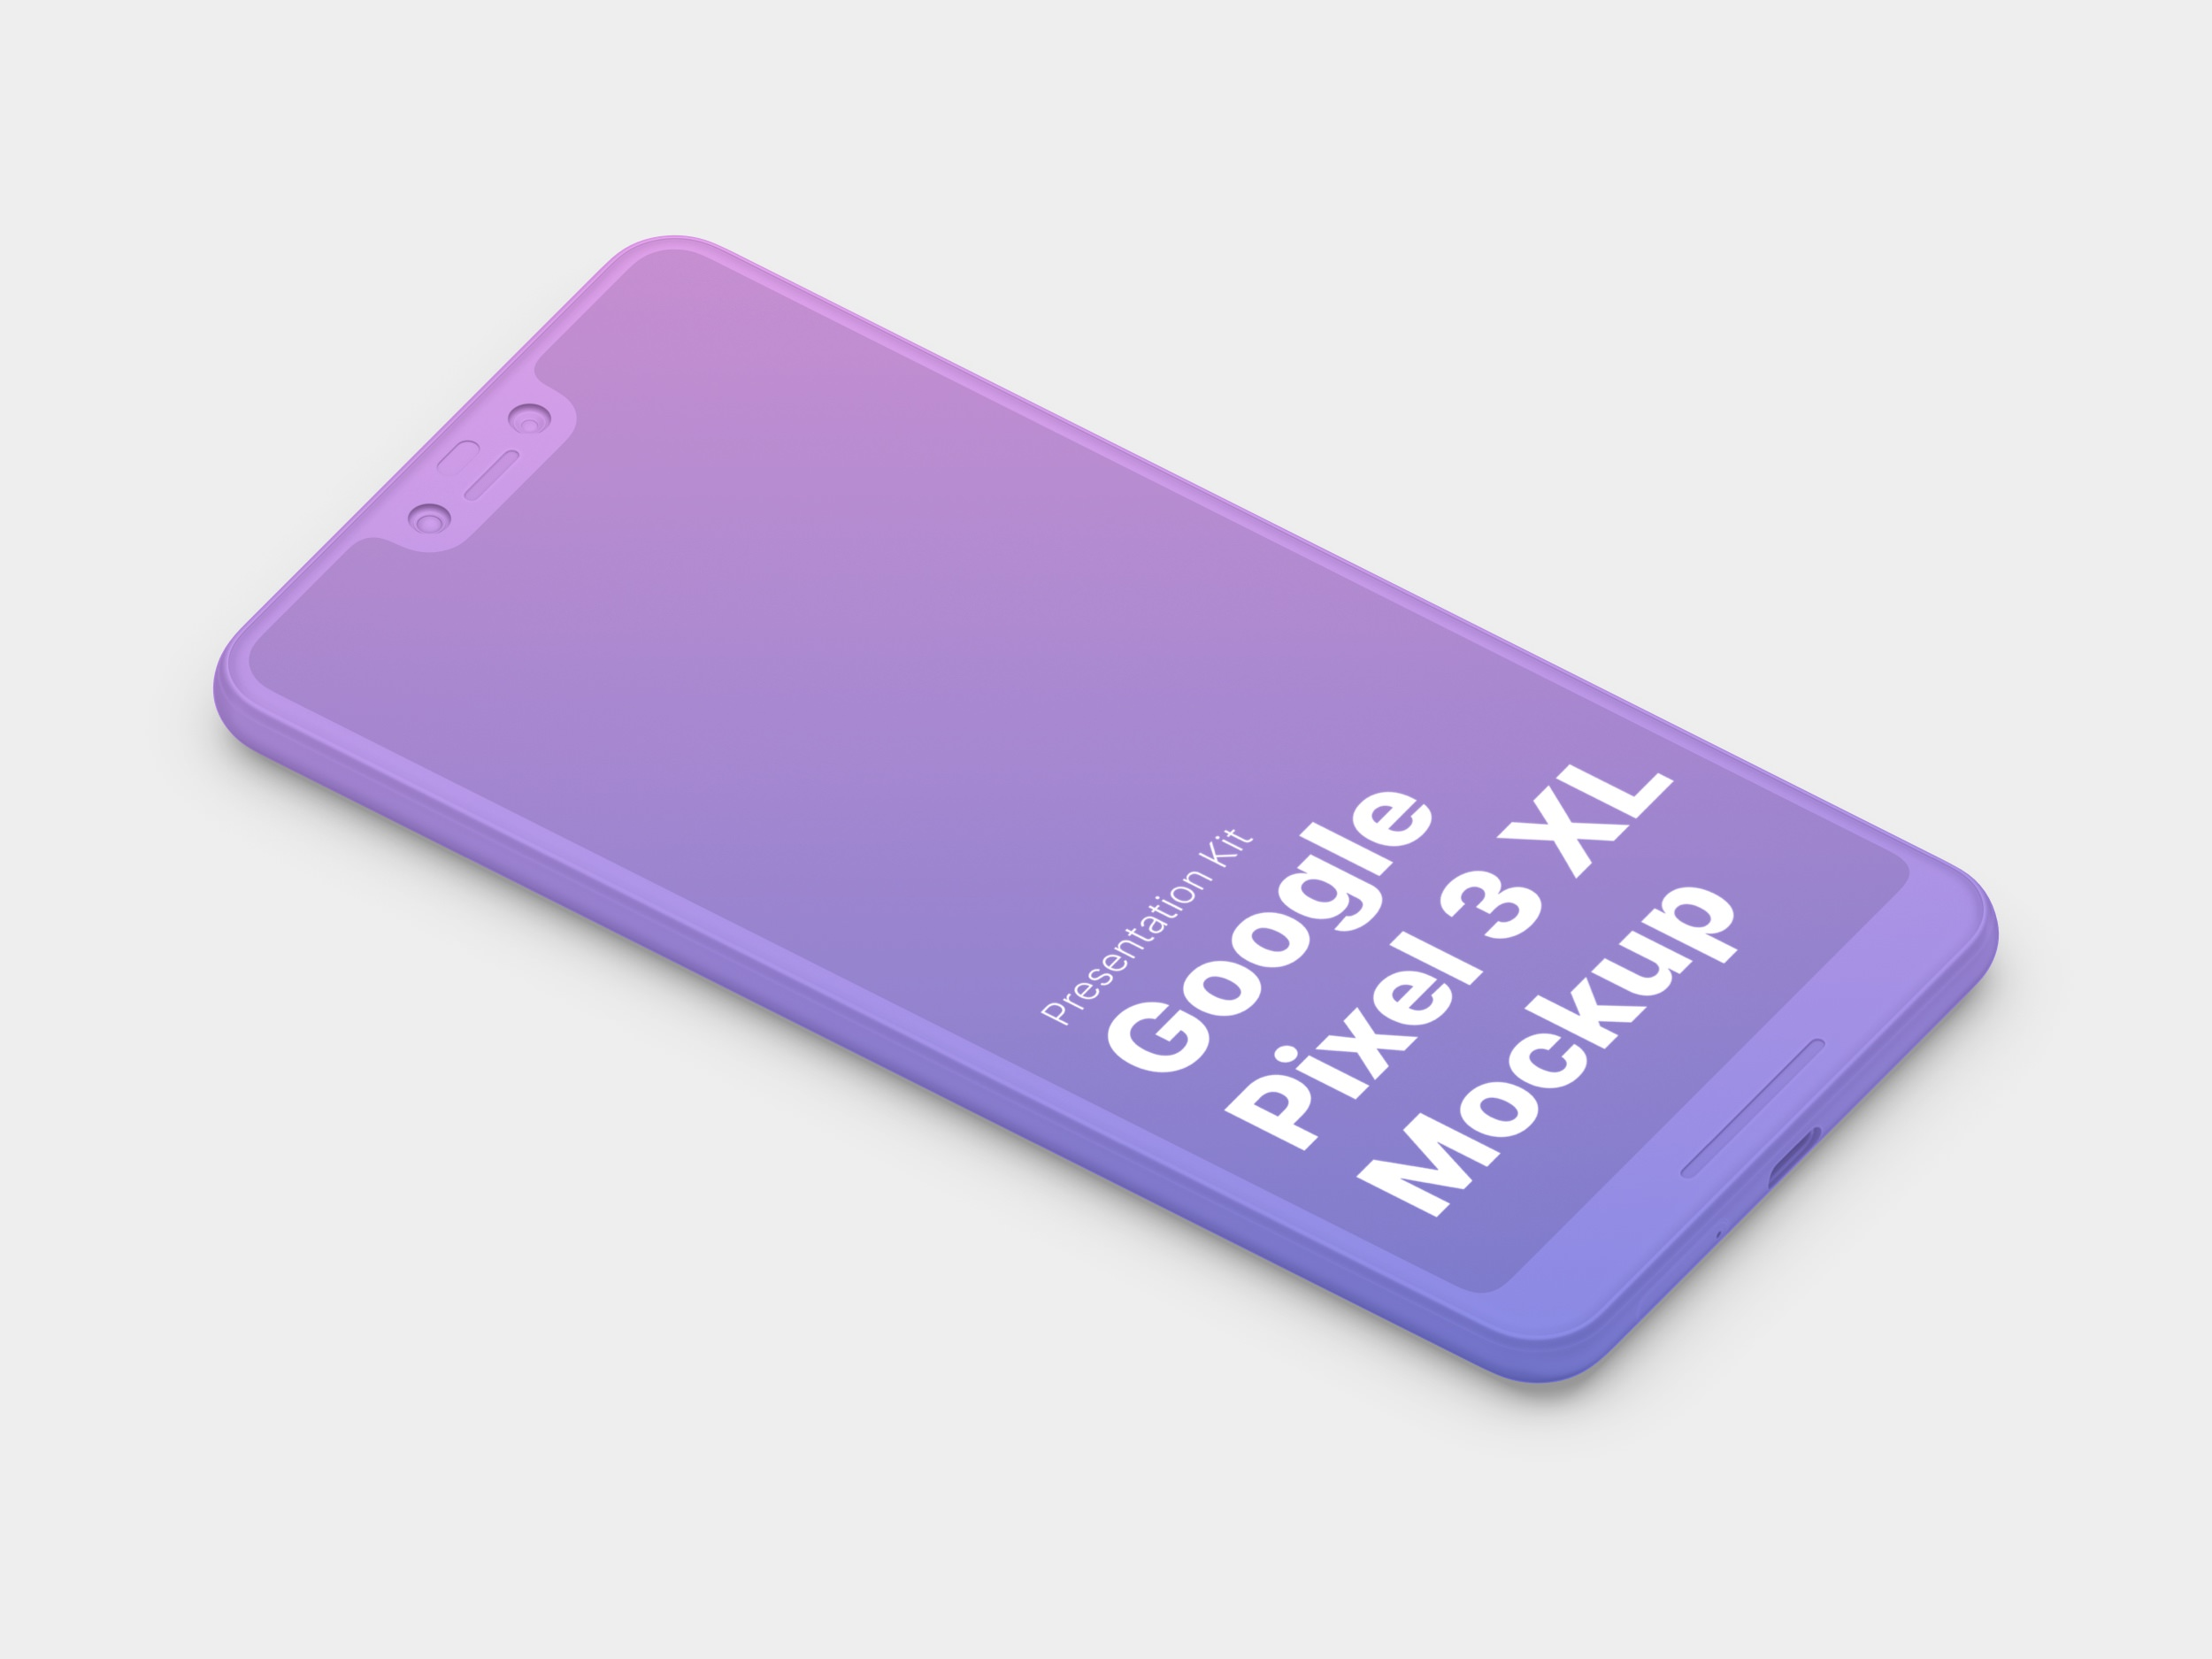 Google Pixel 3 XL or Sketch, Photoshop, Figma.